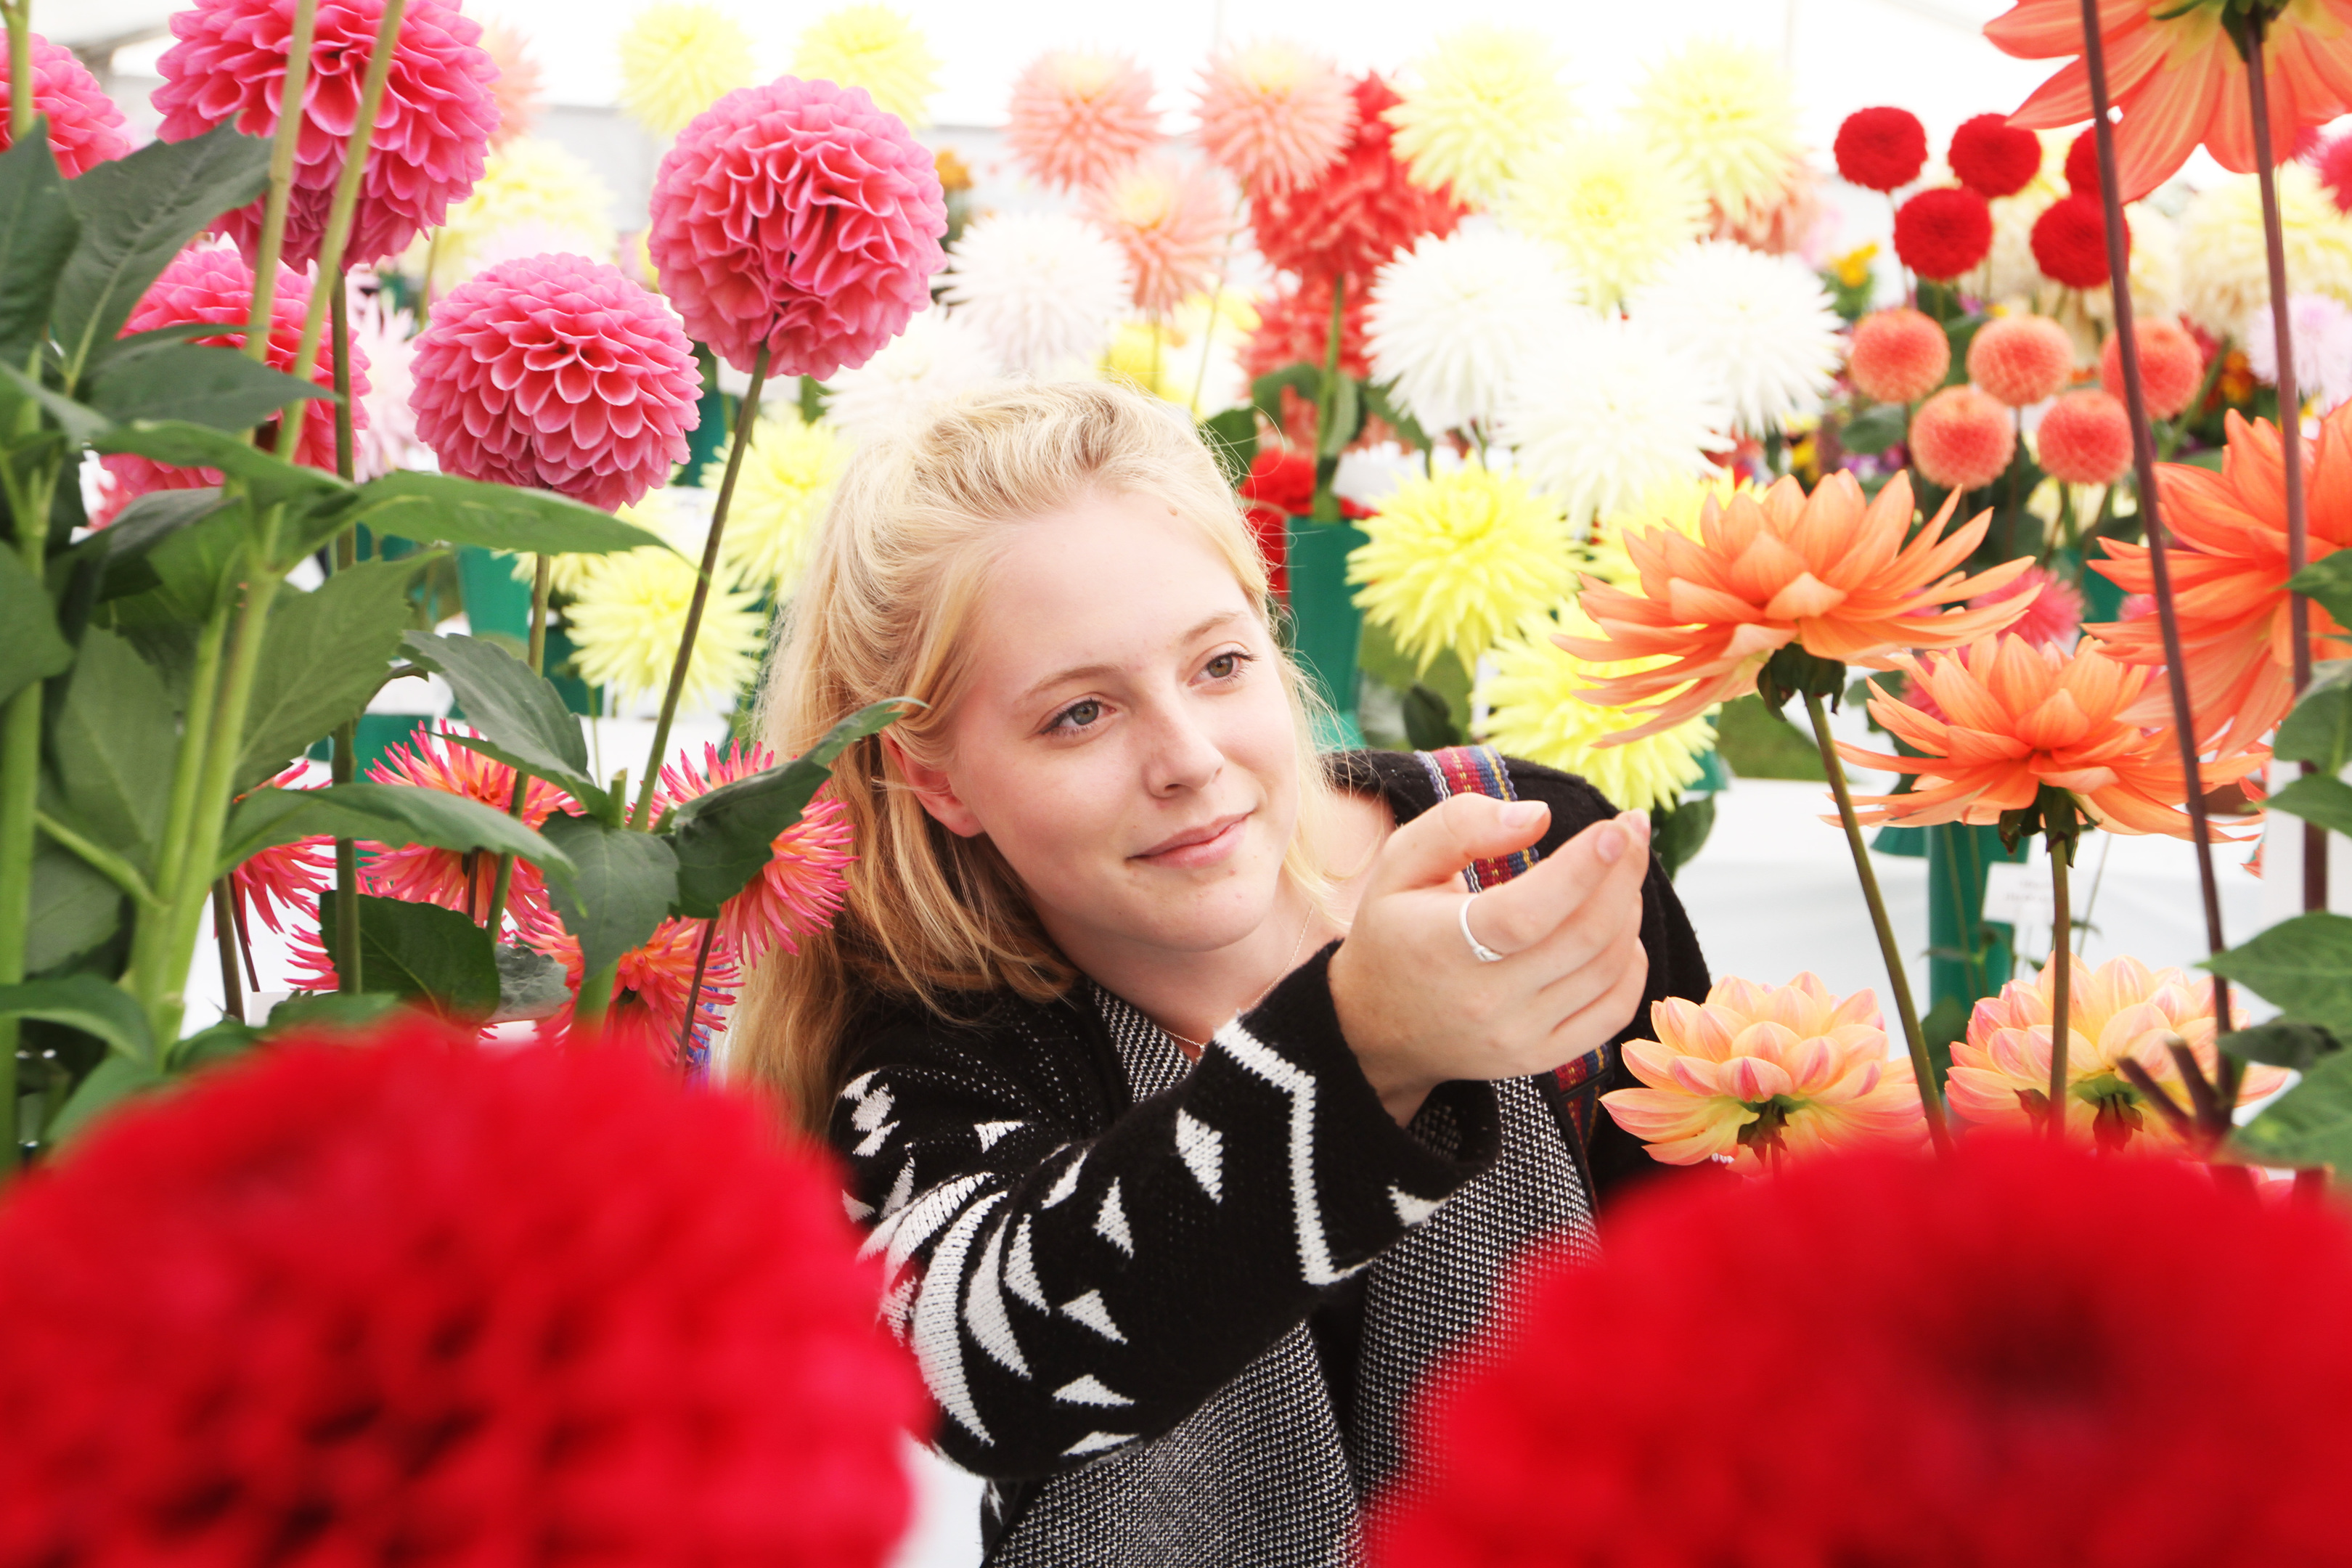 Fiona Hearn, 18, looks at the dahlias at the Flower and Food Festival.